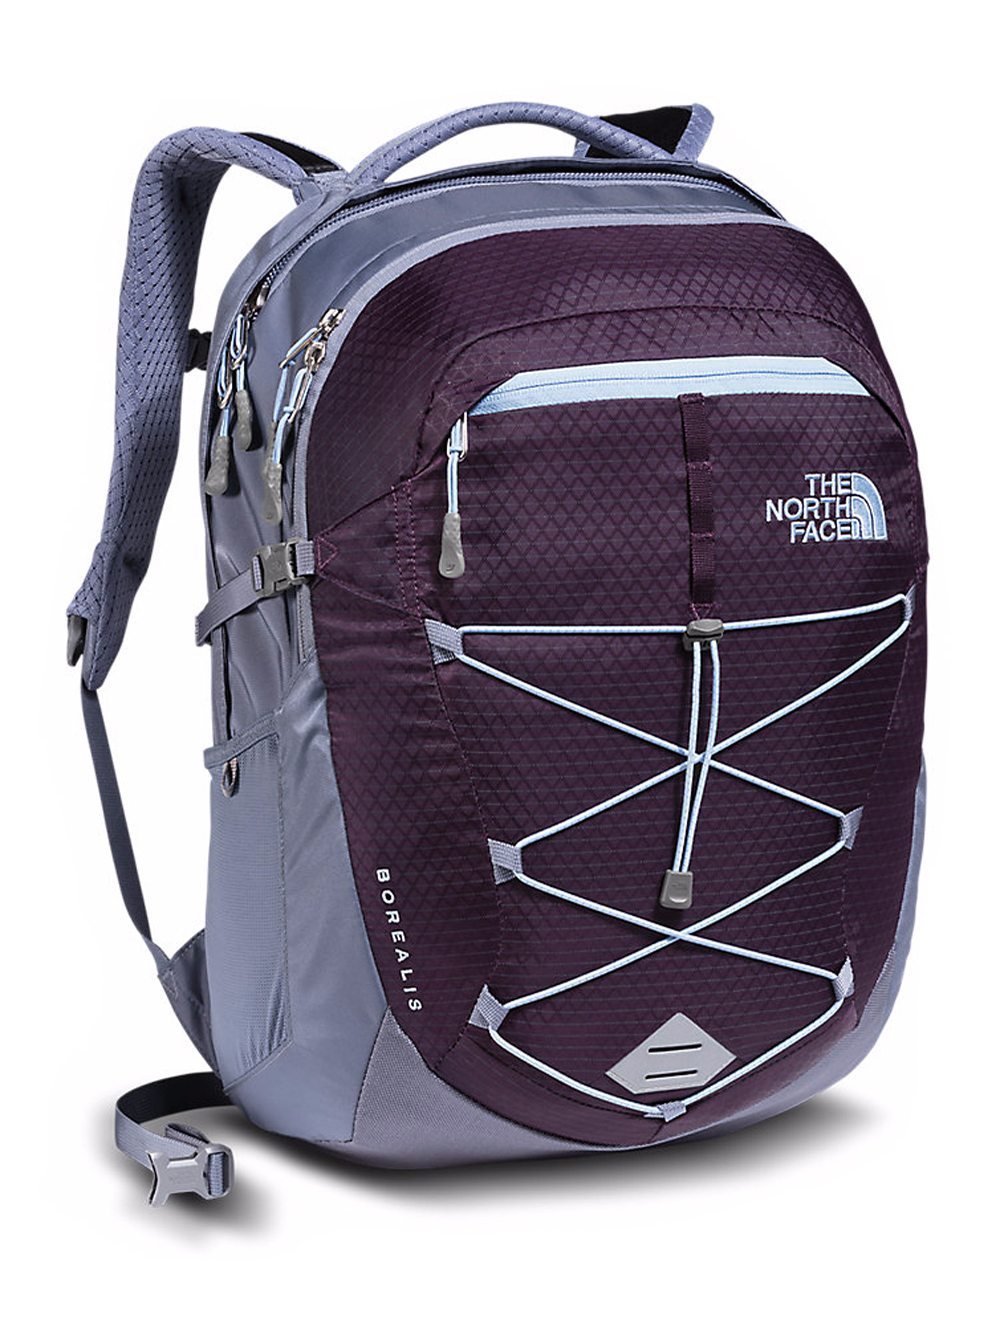 The North Face Women's Borealis Backpack - blackberry wine/chambray blue, one size